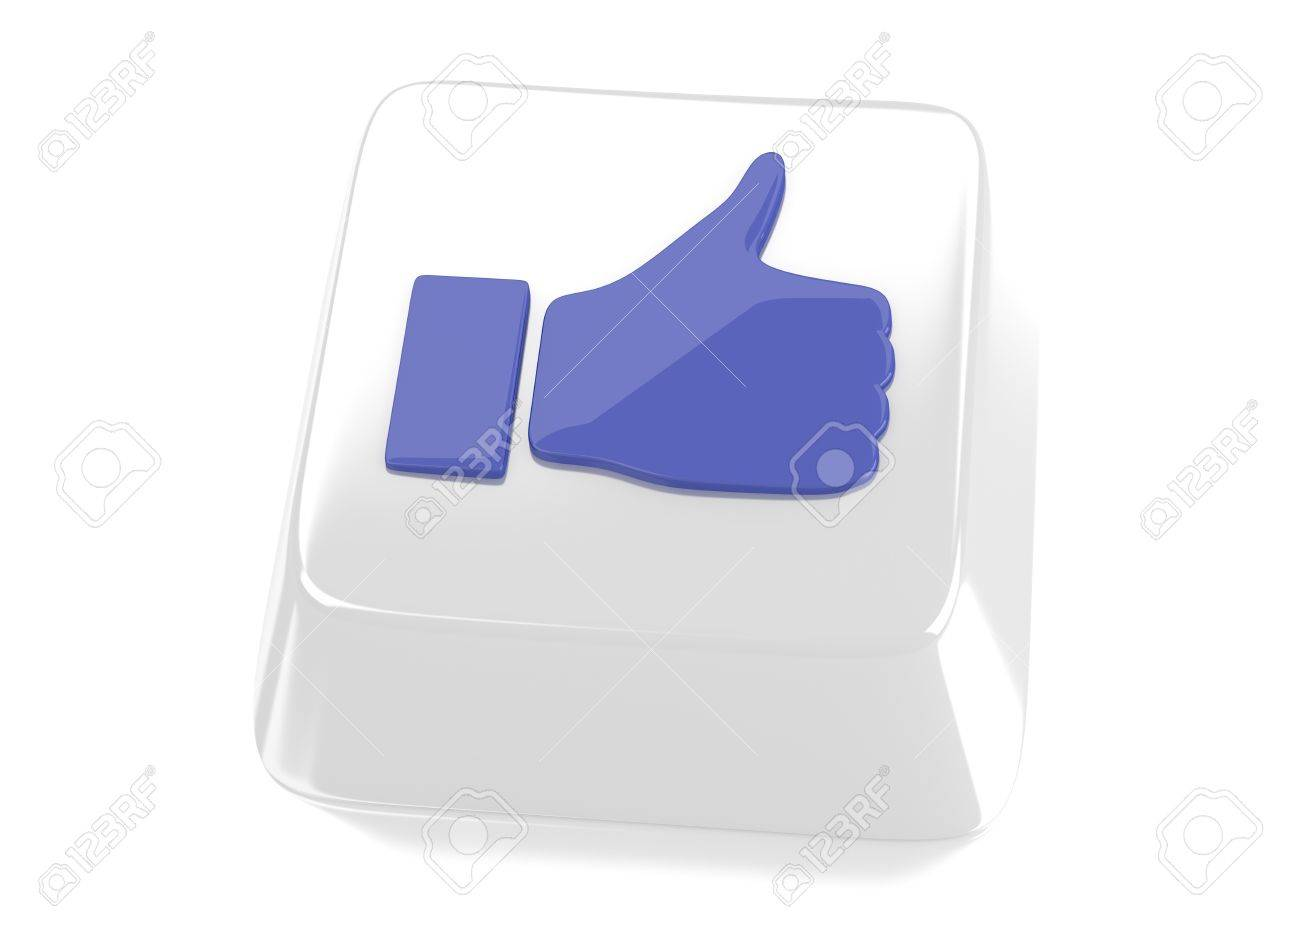 Thumb up icon in blue on white computer key  3d illustration  Isolated background Stock Illustration - 16493457